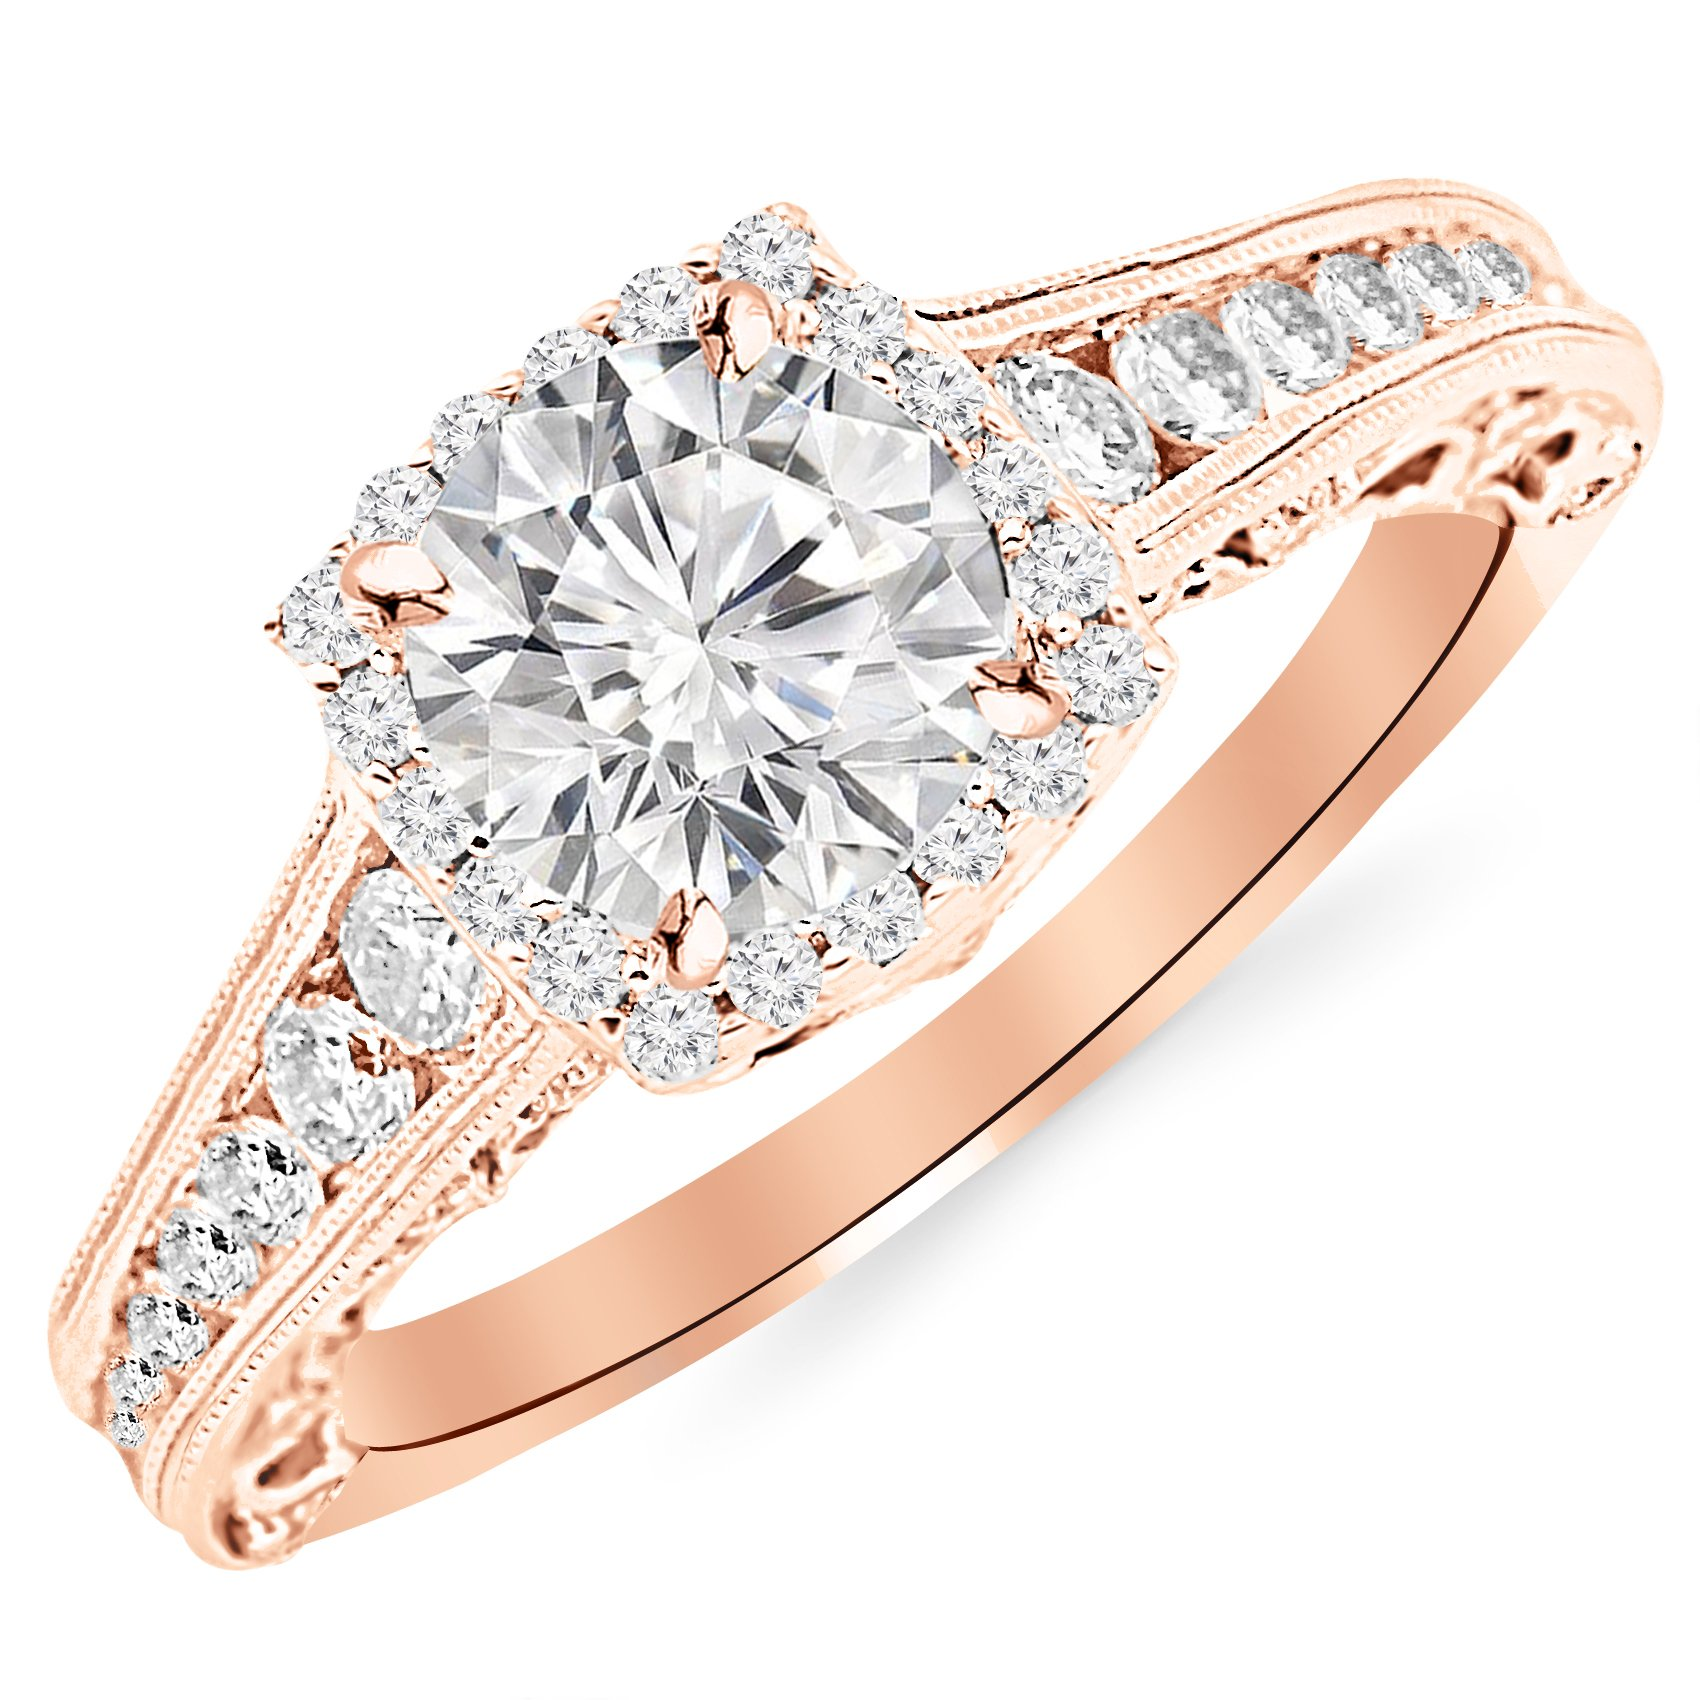 2.25 Carat 14K Rose Gold Vintage Halo Style Channel Set Round Brilliant Diamond Engagement Ring Milgrain with a 1.5 Carat Moissanite Center